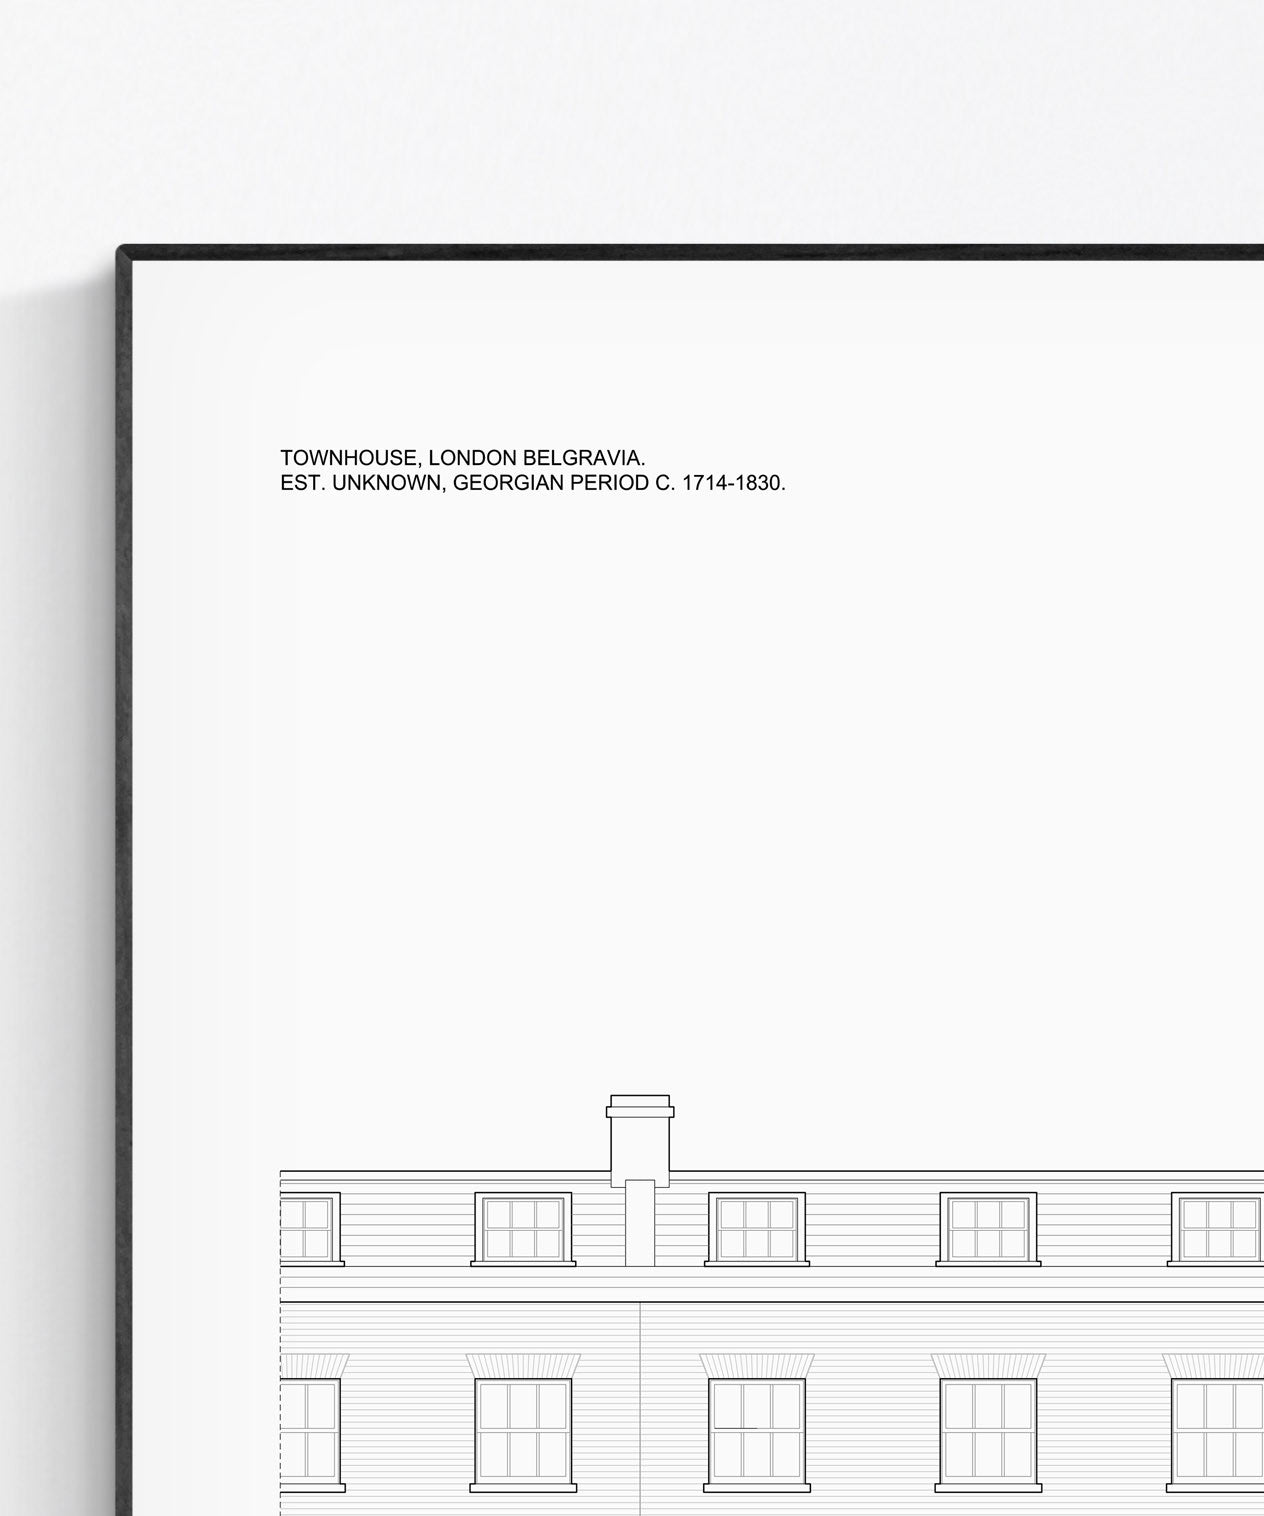 London Townhouse Architectural Print - Detail